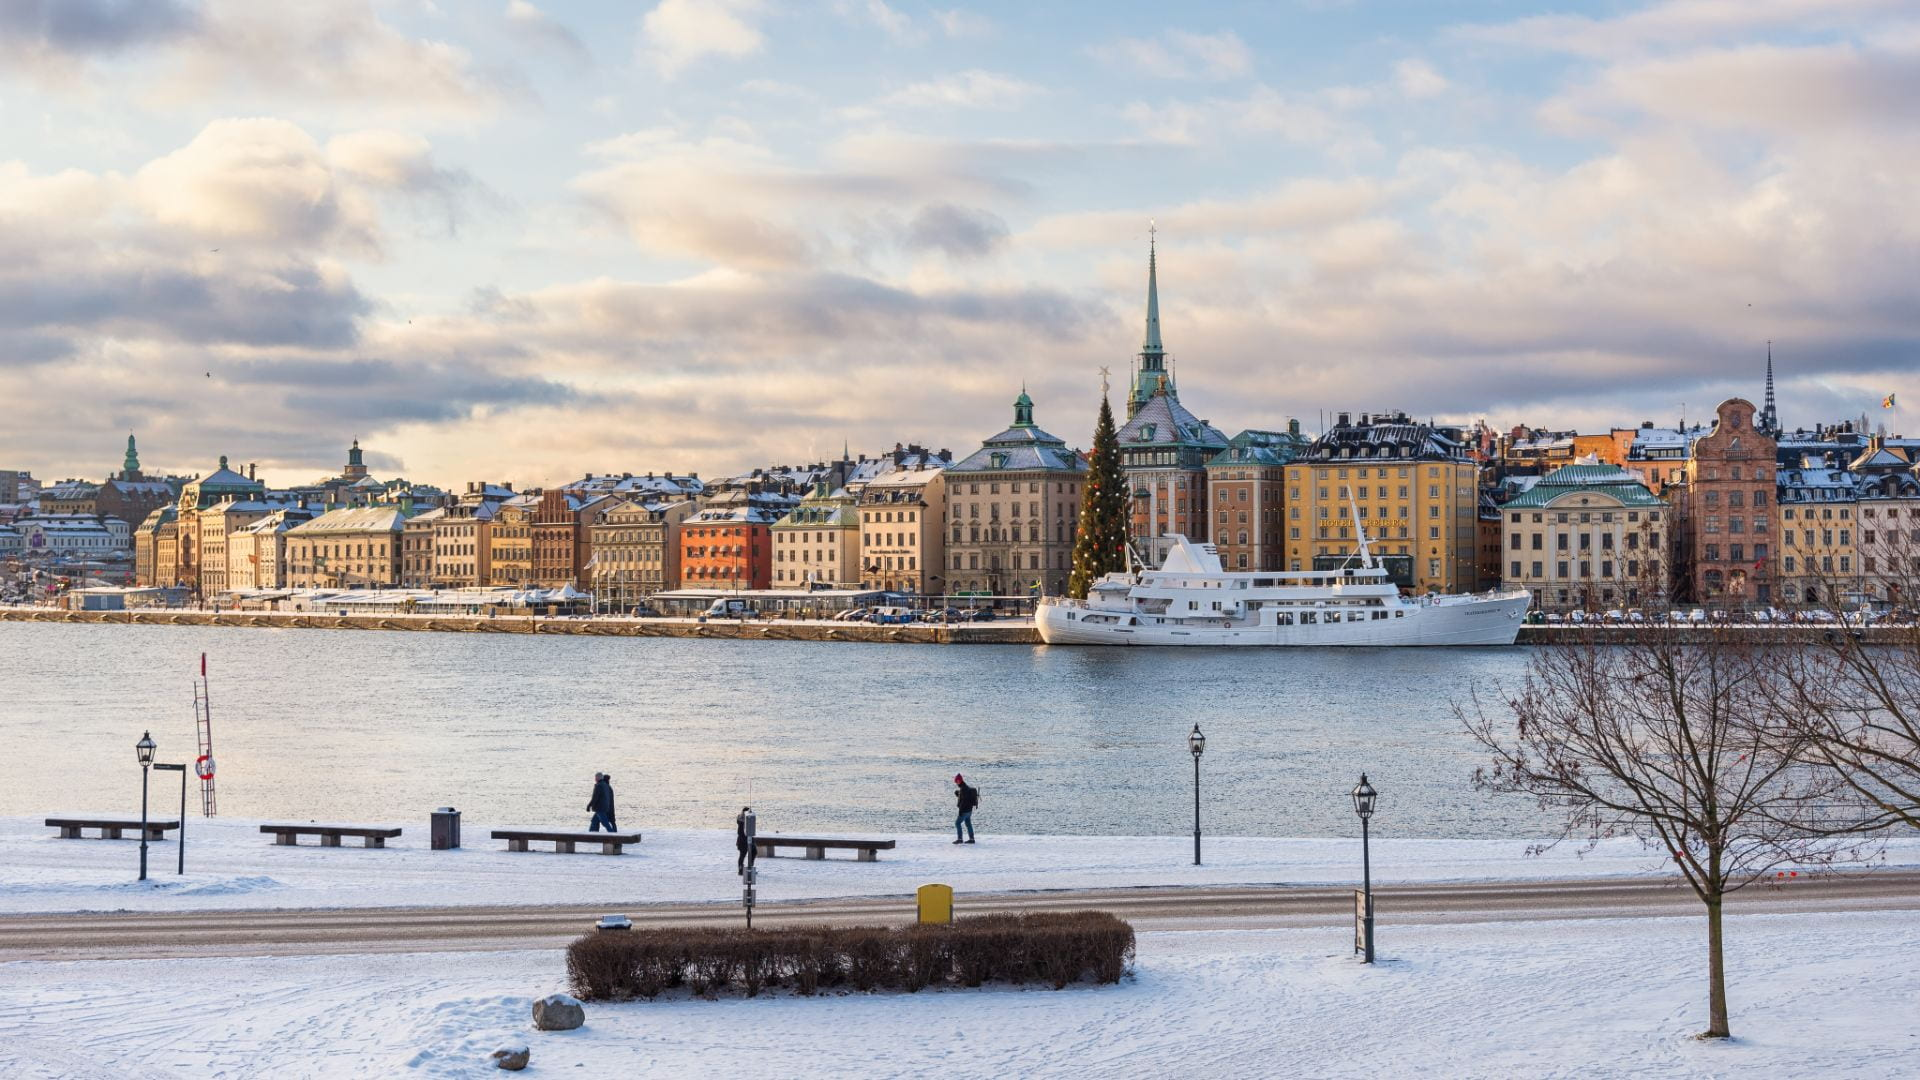 A view of Stockholm across the water in winter.